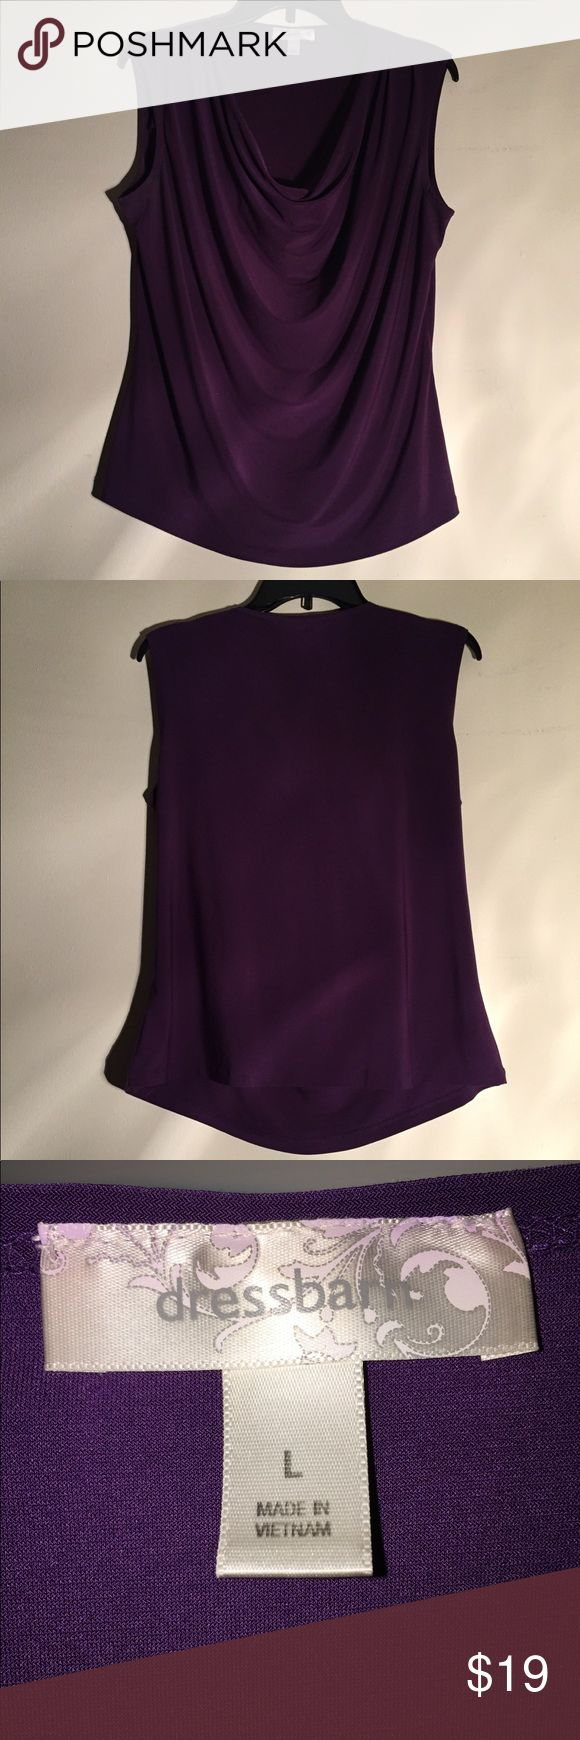 Professional, sophisticated, purple plum top! NWOT! 95% Polyester, 5% Spandex! Cutest purple dressy top for a night out on the town, dressing to impress for an interview, or making a great impression on your regular day at work! 😎🙋🏼💃🏼🛍💄💋💕 Dress Barn Tops Blouses